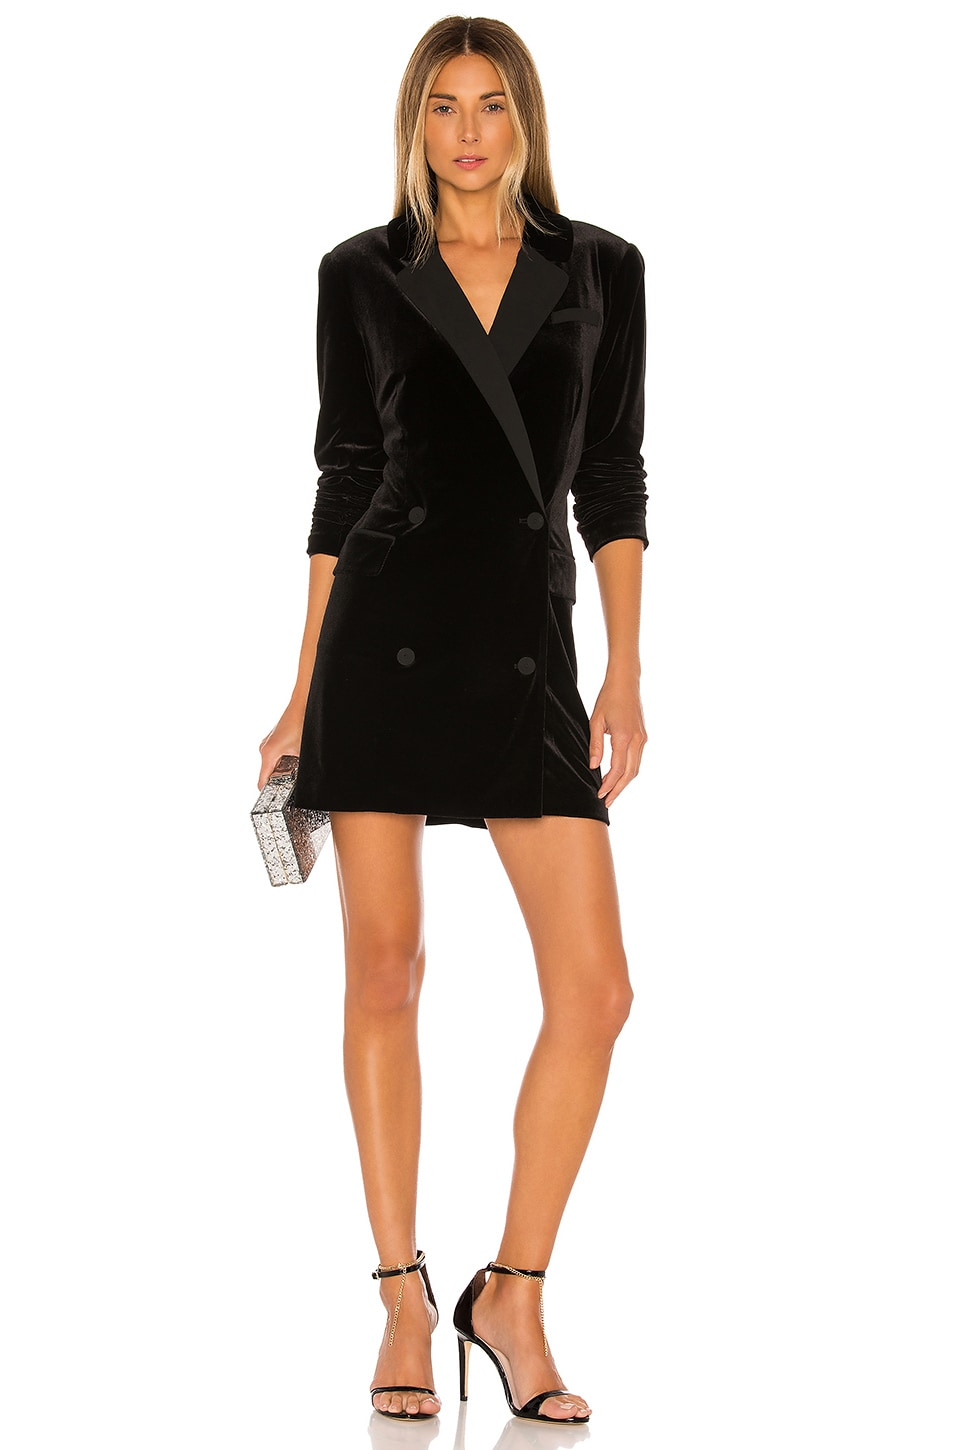 Ruched Velvet Blazer Dress             1. STATE                                                                                                                                         Sale price:                                                                       CA$ 141.86                                                                  Previous price:                                                                       CA$ 201.31 8